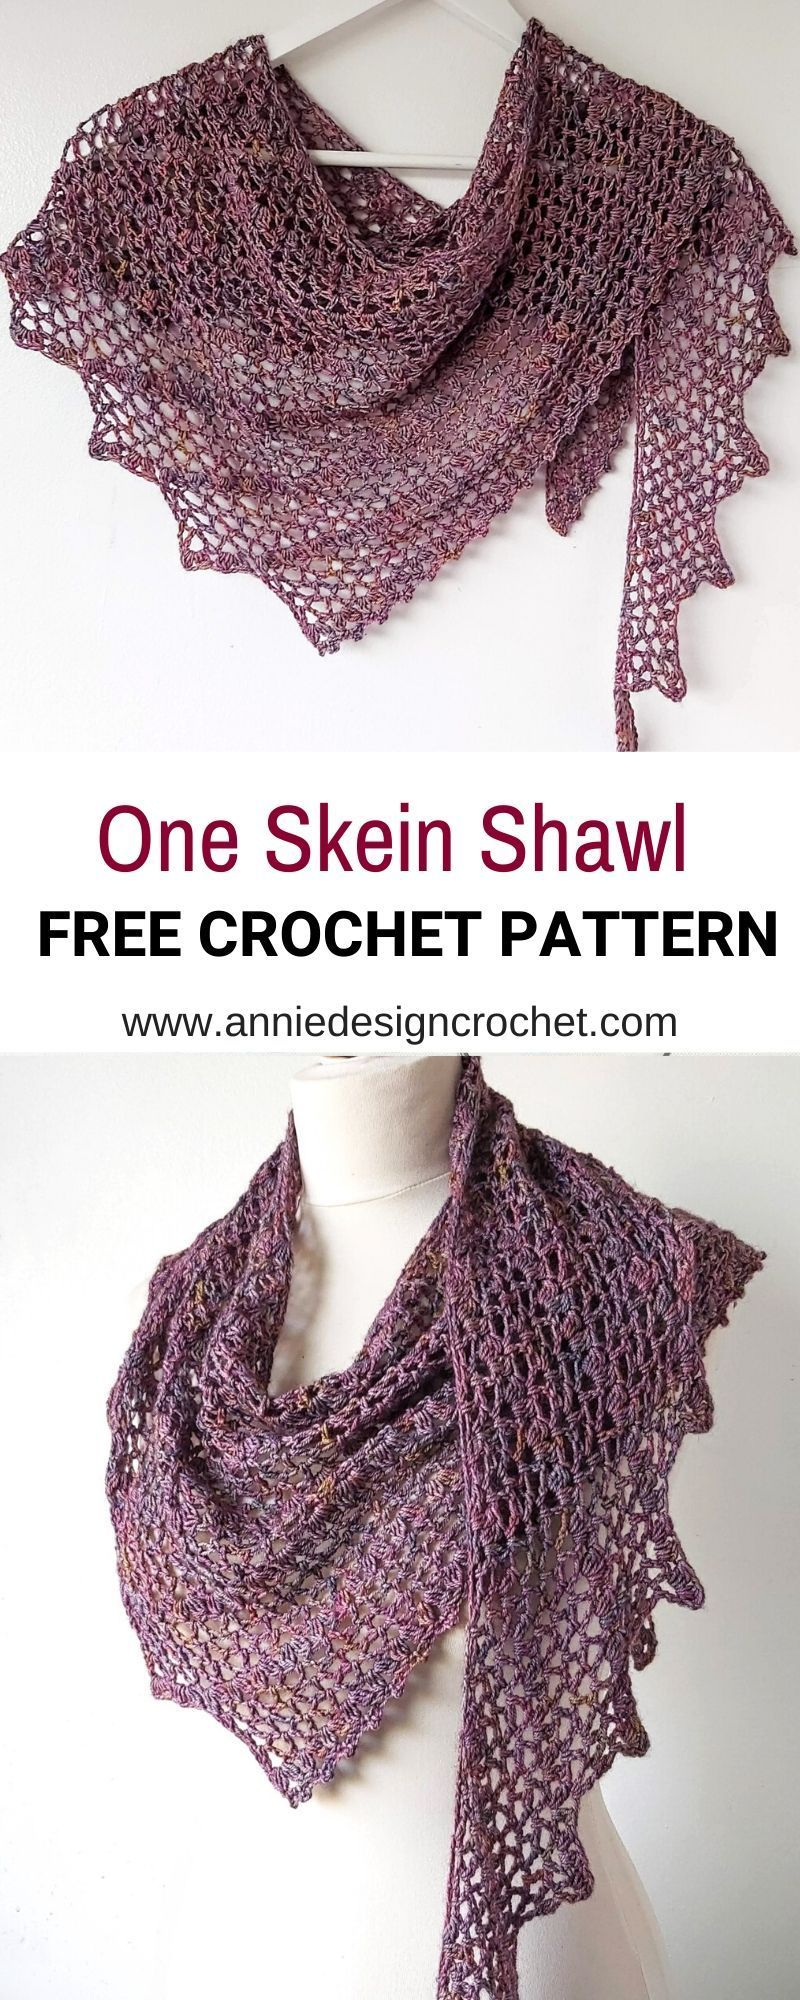 One Skein Crochet Shawl Pattern - Tendril - Annie Design Crochet #shawlcrochetpattern